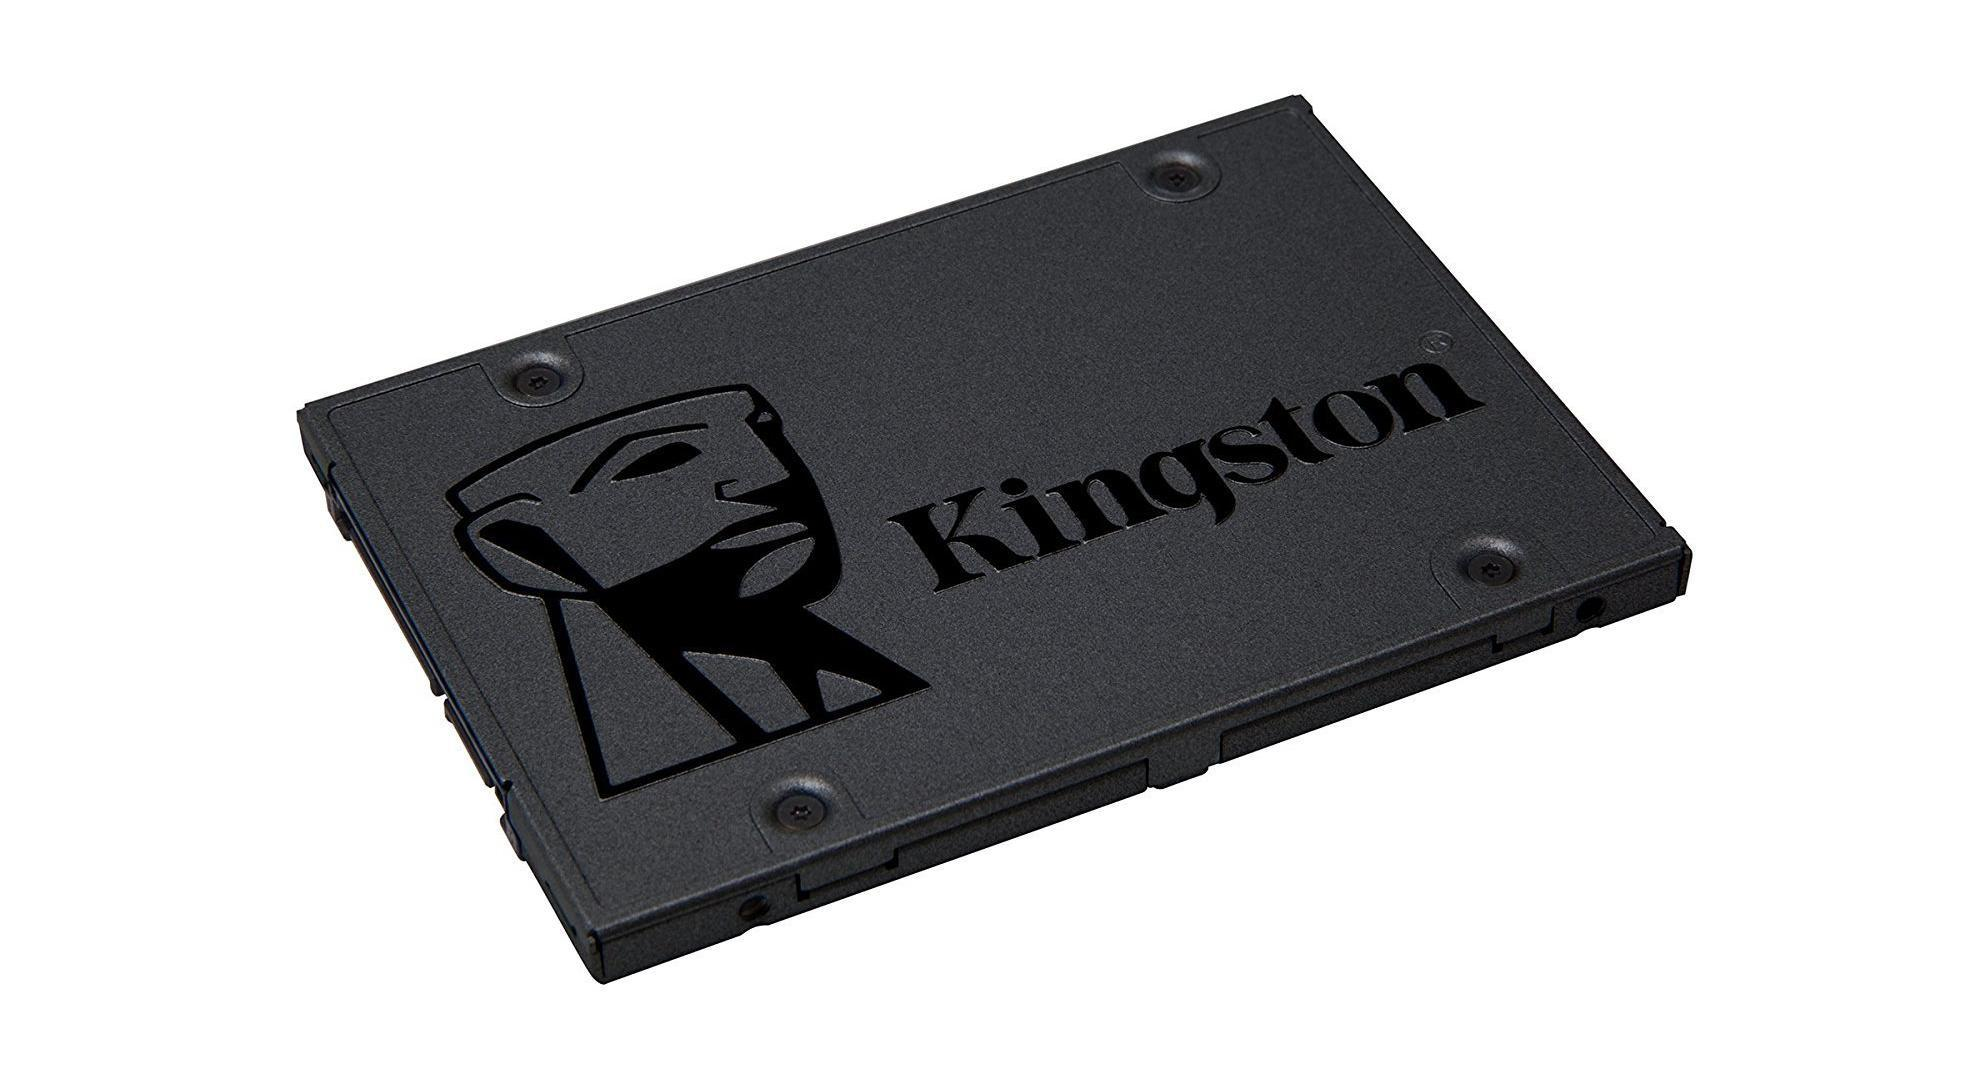 🔥 Bon plan : un SSD Kingston de 120 Go à seulement 15 euros sur Amazon